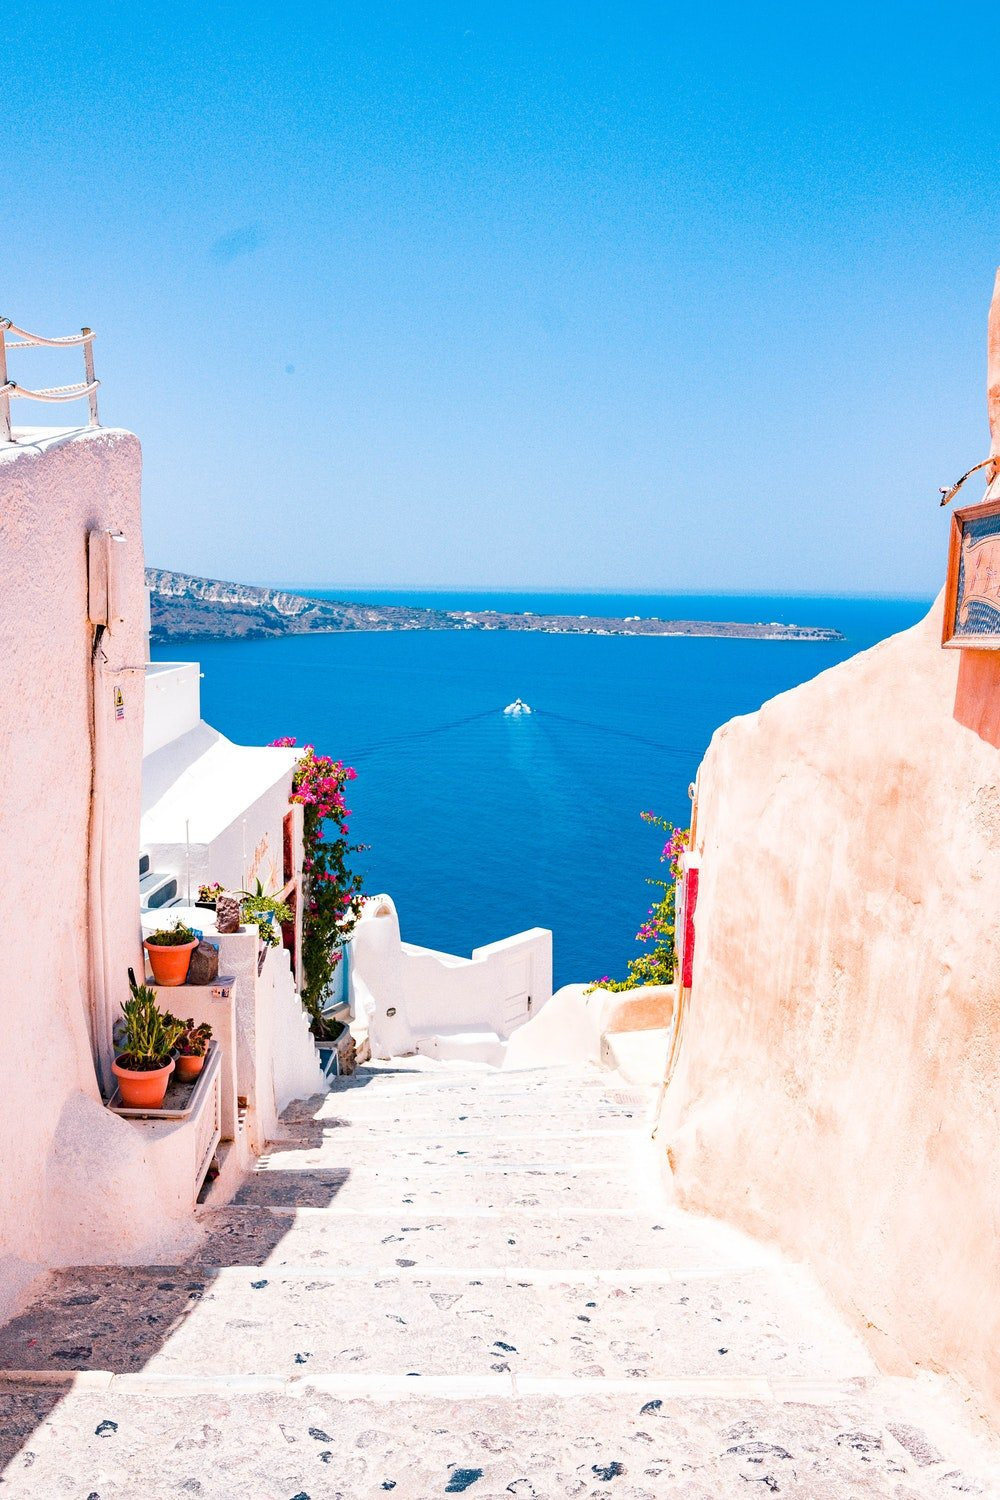 500 Santorini Pictures [Stunning] Download Images on Unsplash 1000x1500